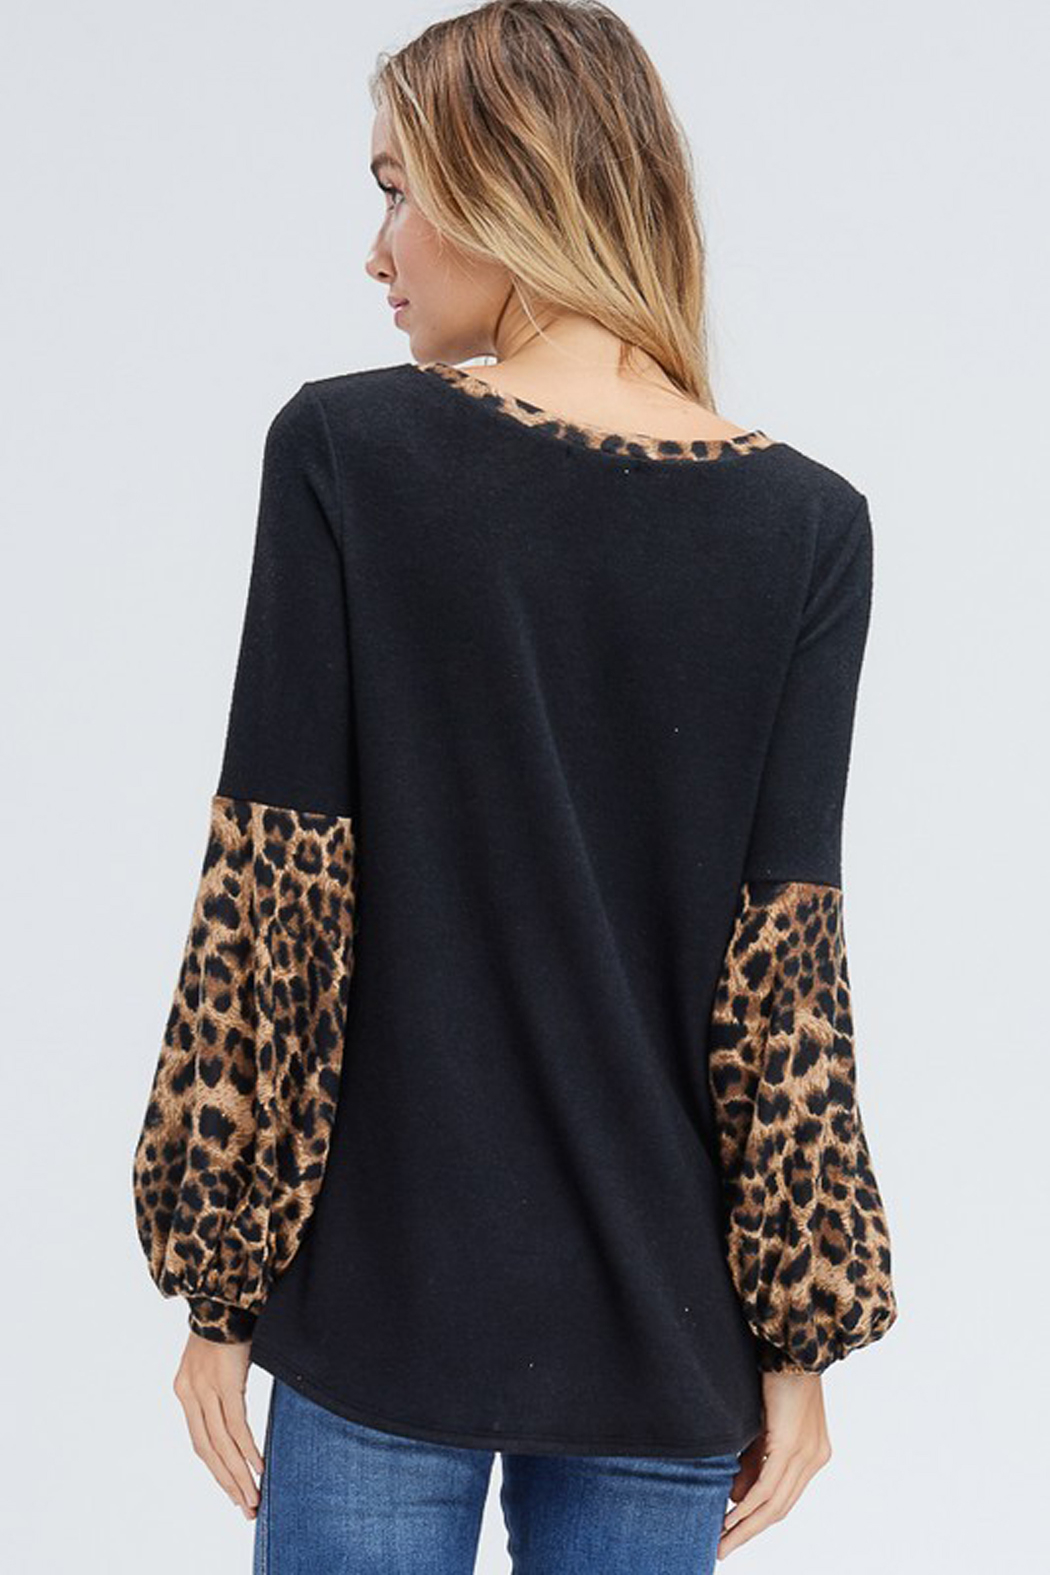 White Birch  Solid Top with Leopard Contrast Collar and Sleeves - Back Cropped Image